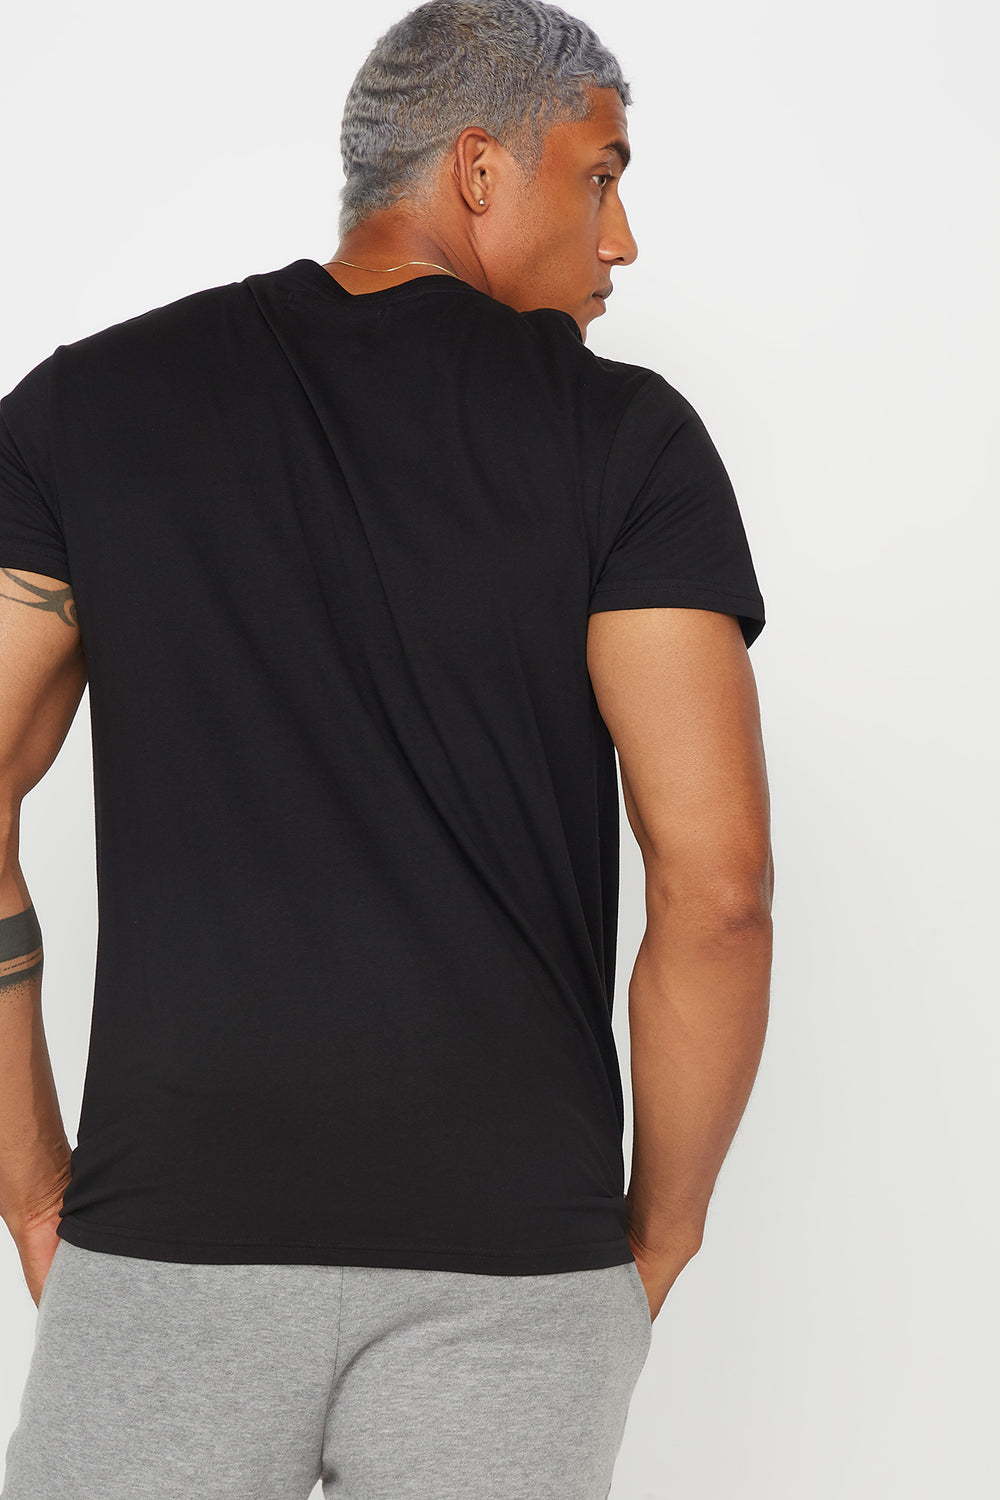 Basic Cotton Crew Neck T-Shirt Black